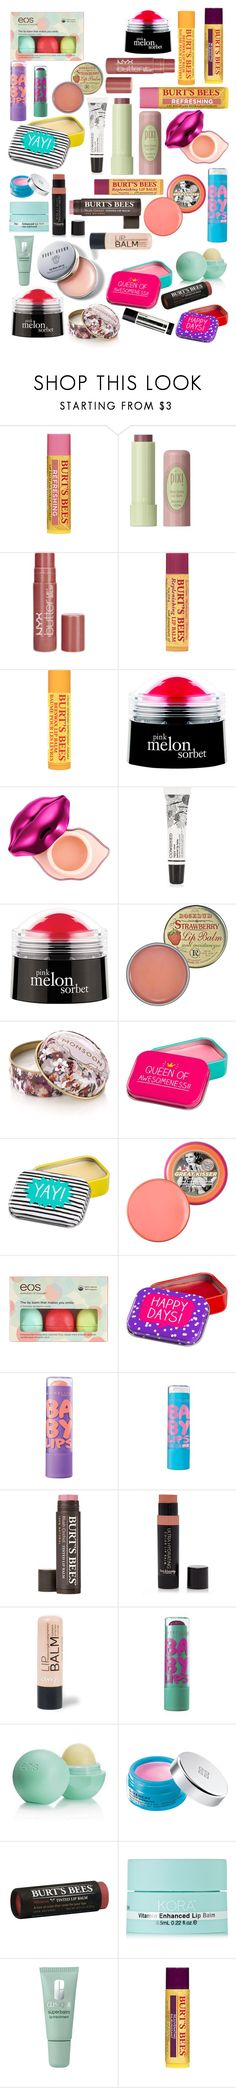 """Lip balm"" by makemepretty-1 ❤ liked on Polyvore featuring beauty, Pixi, NYX, Burt's Bees, philosophy, Tony Moly, M&S, Rosebud Perfume Co., Monsoon and Bobbi Brown Cosmetics"